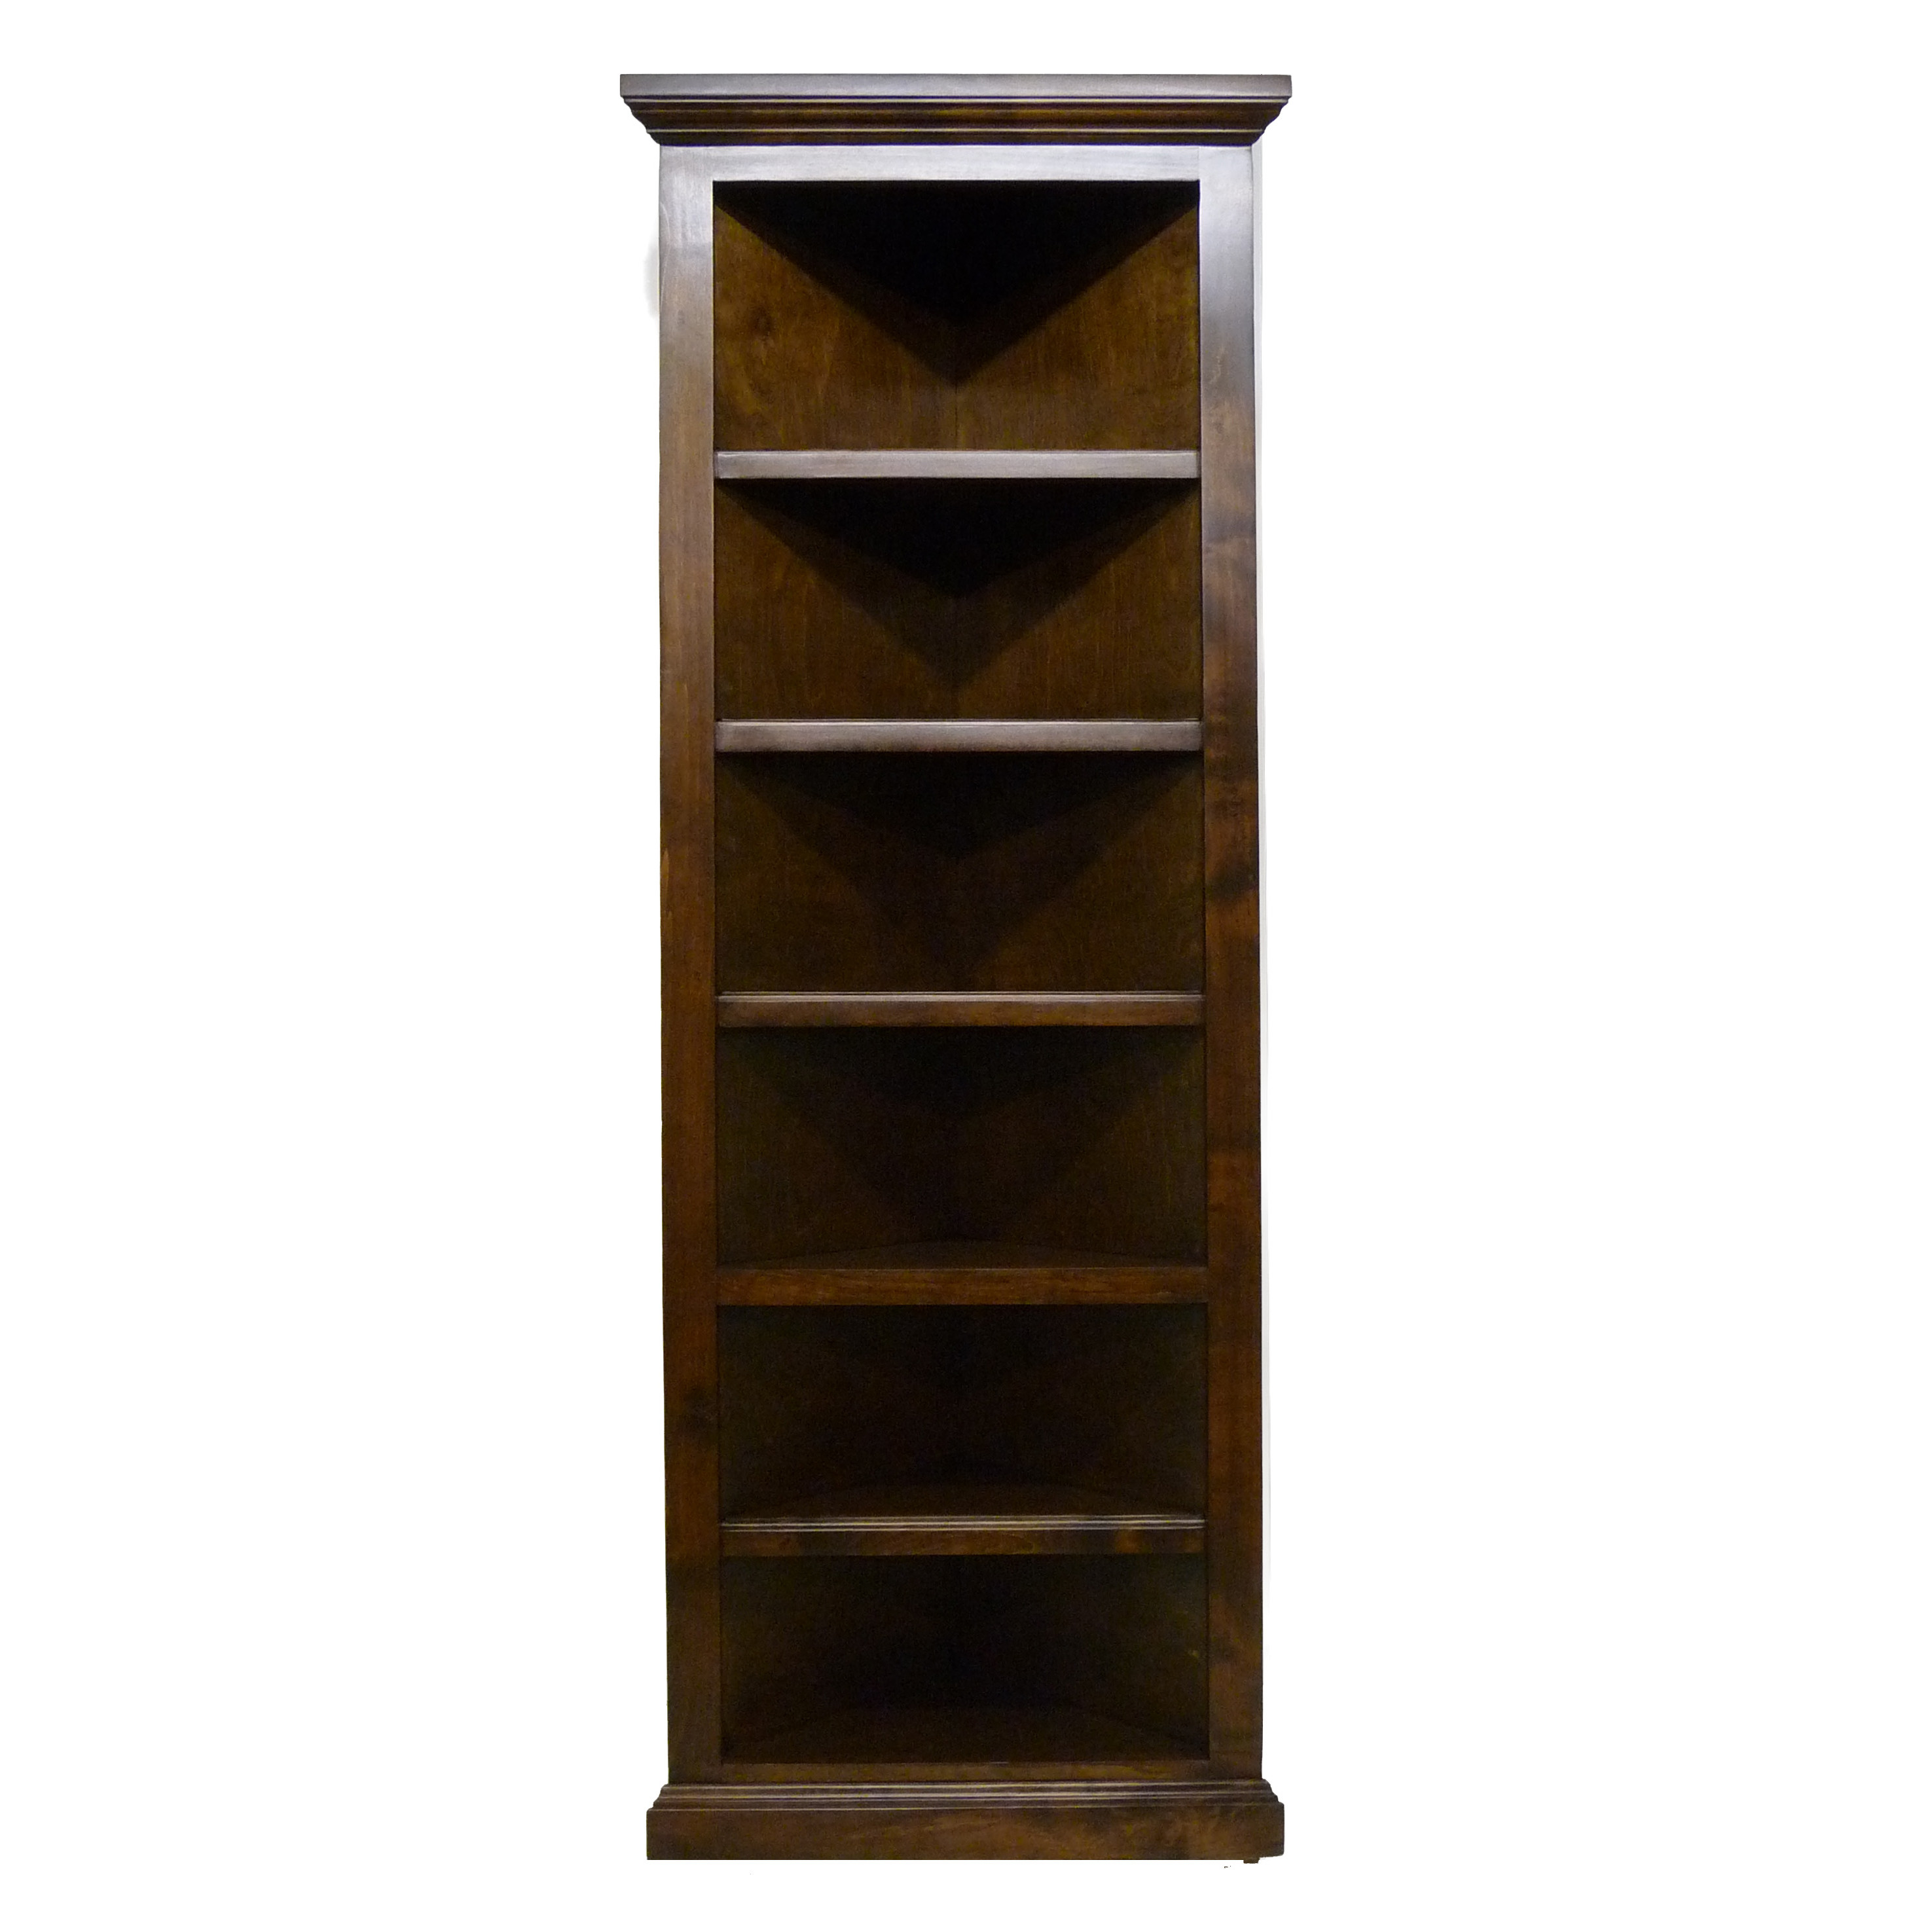 Popular QUICK VIEW. 72 oak corner bookcase